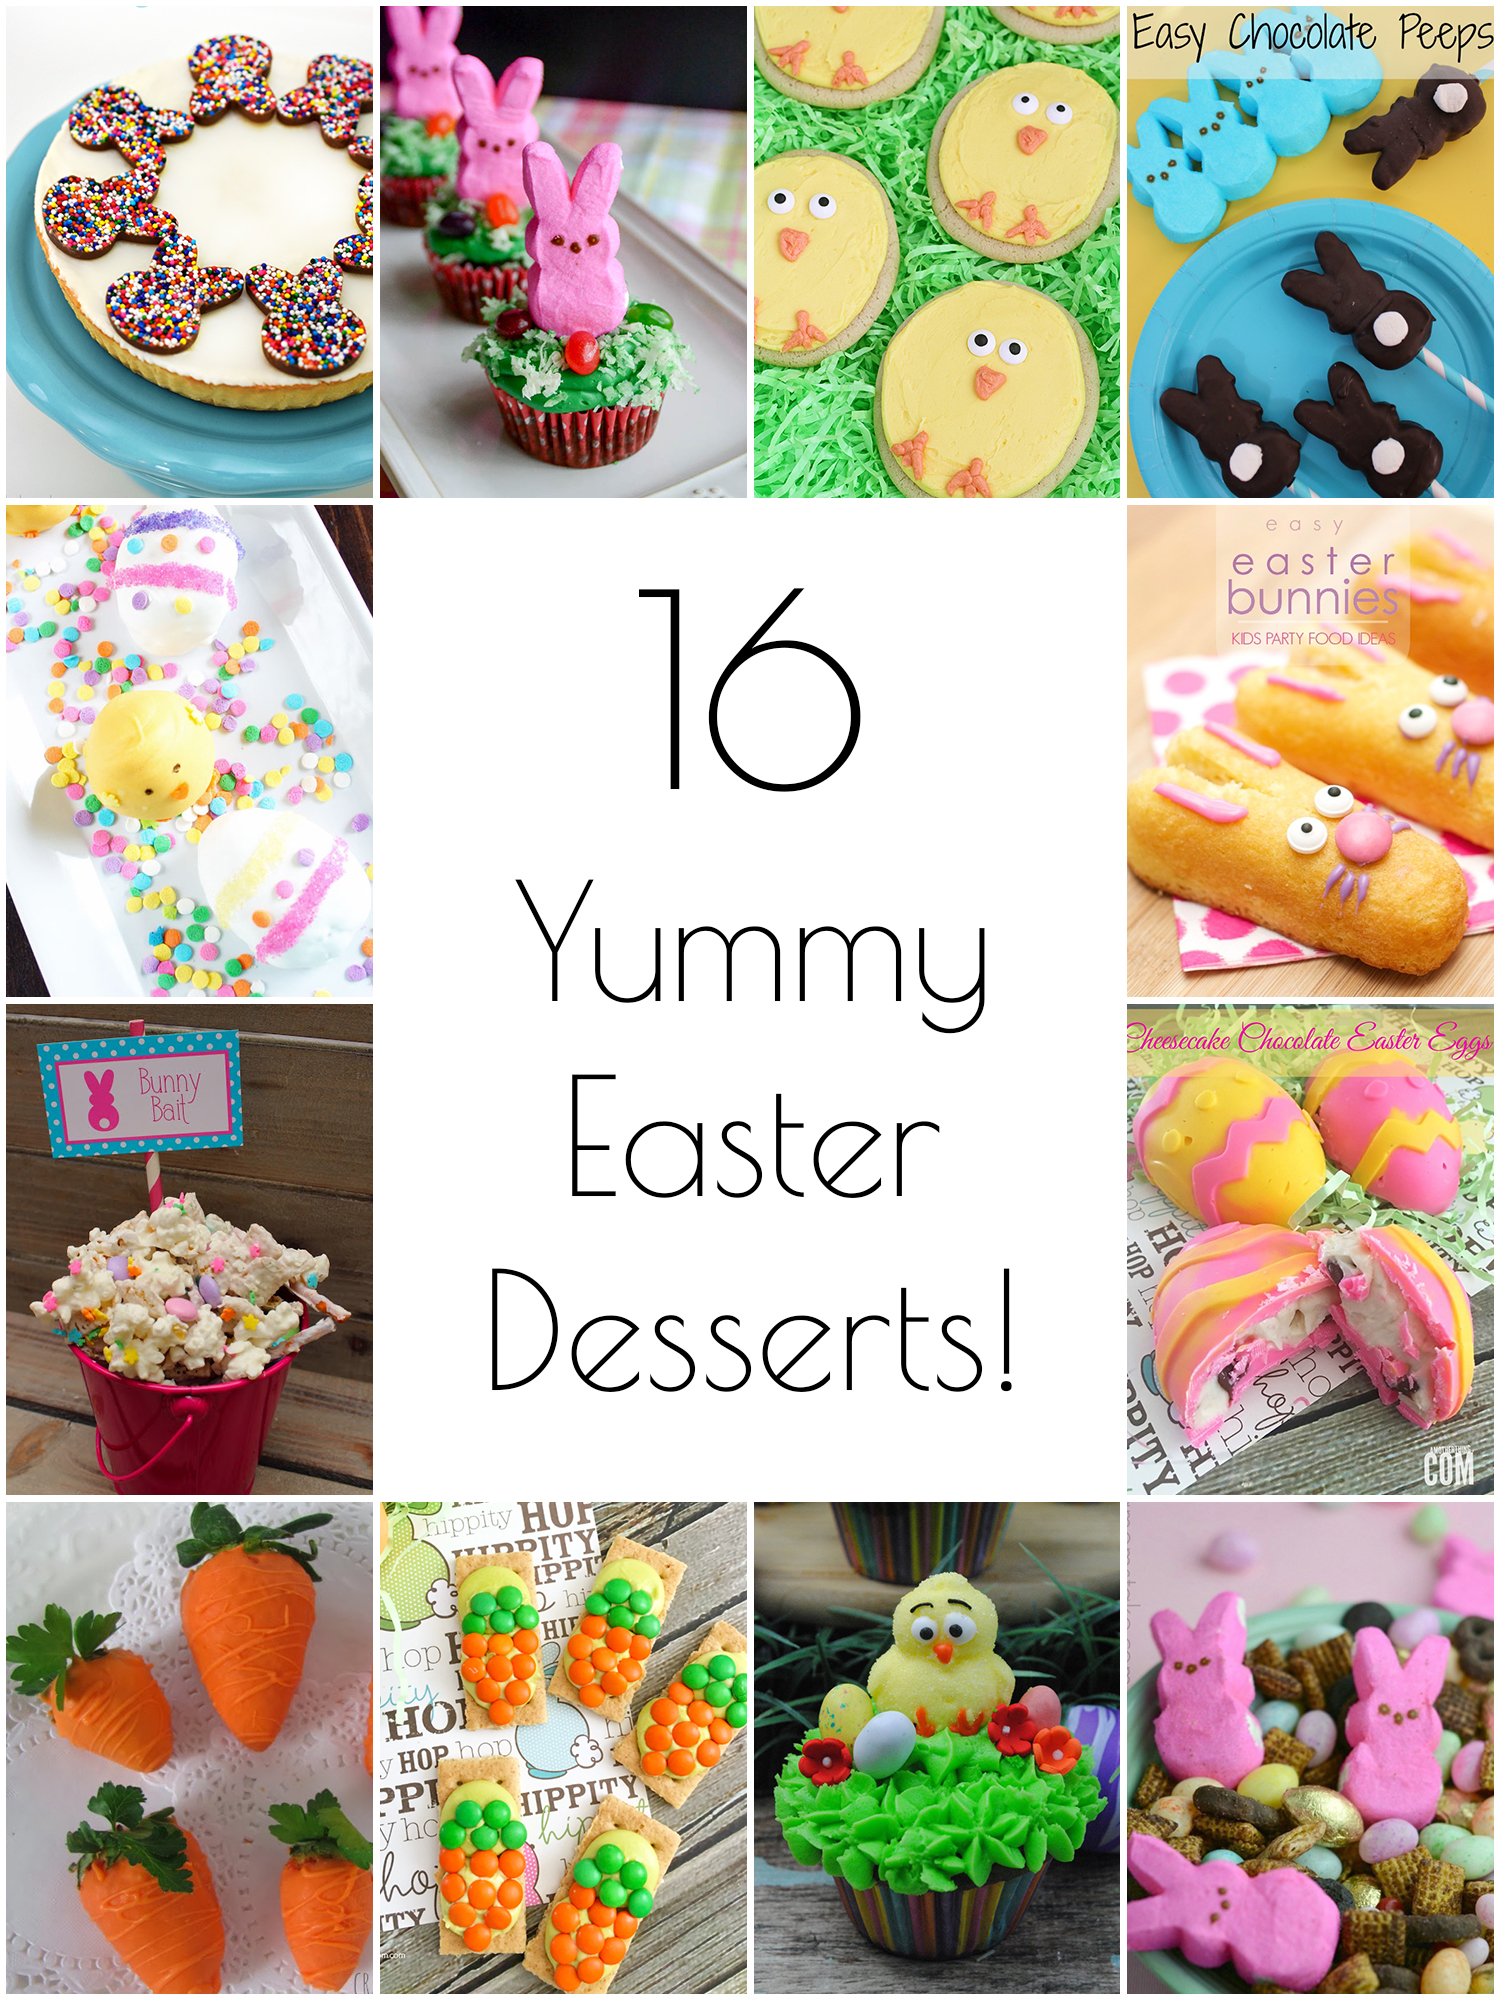 16 yummy Easter desserts